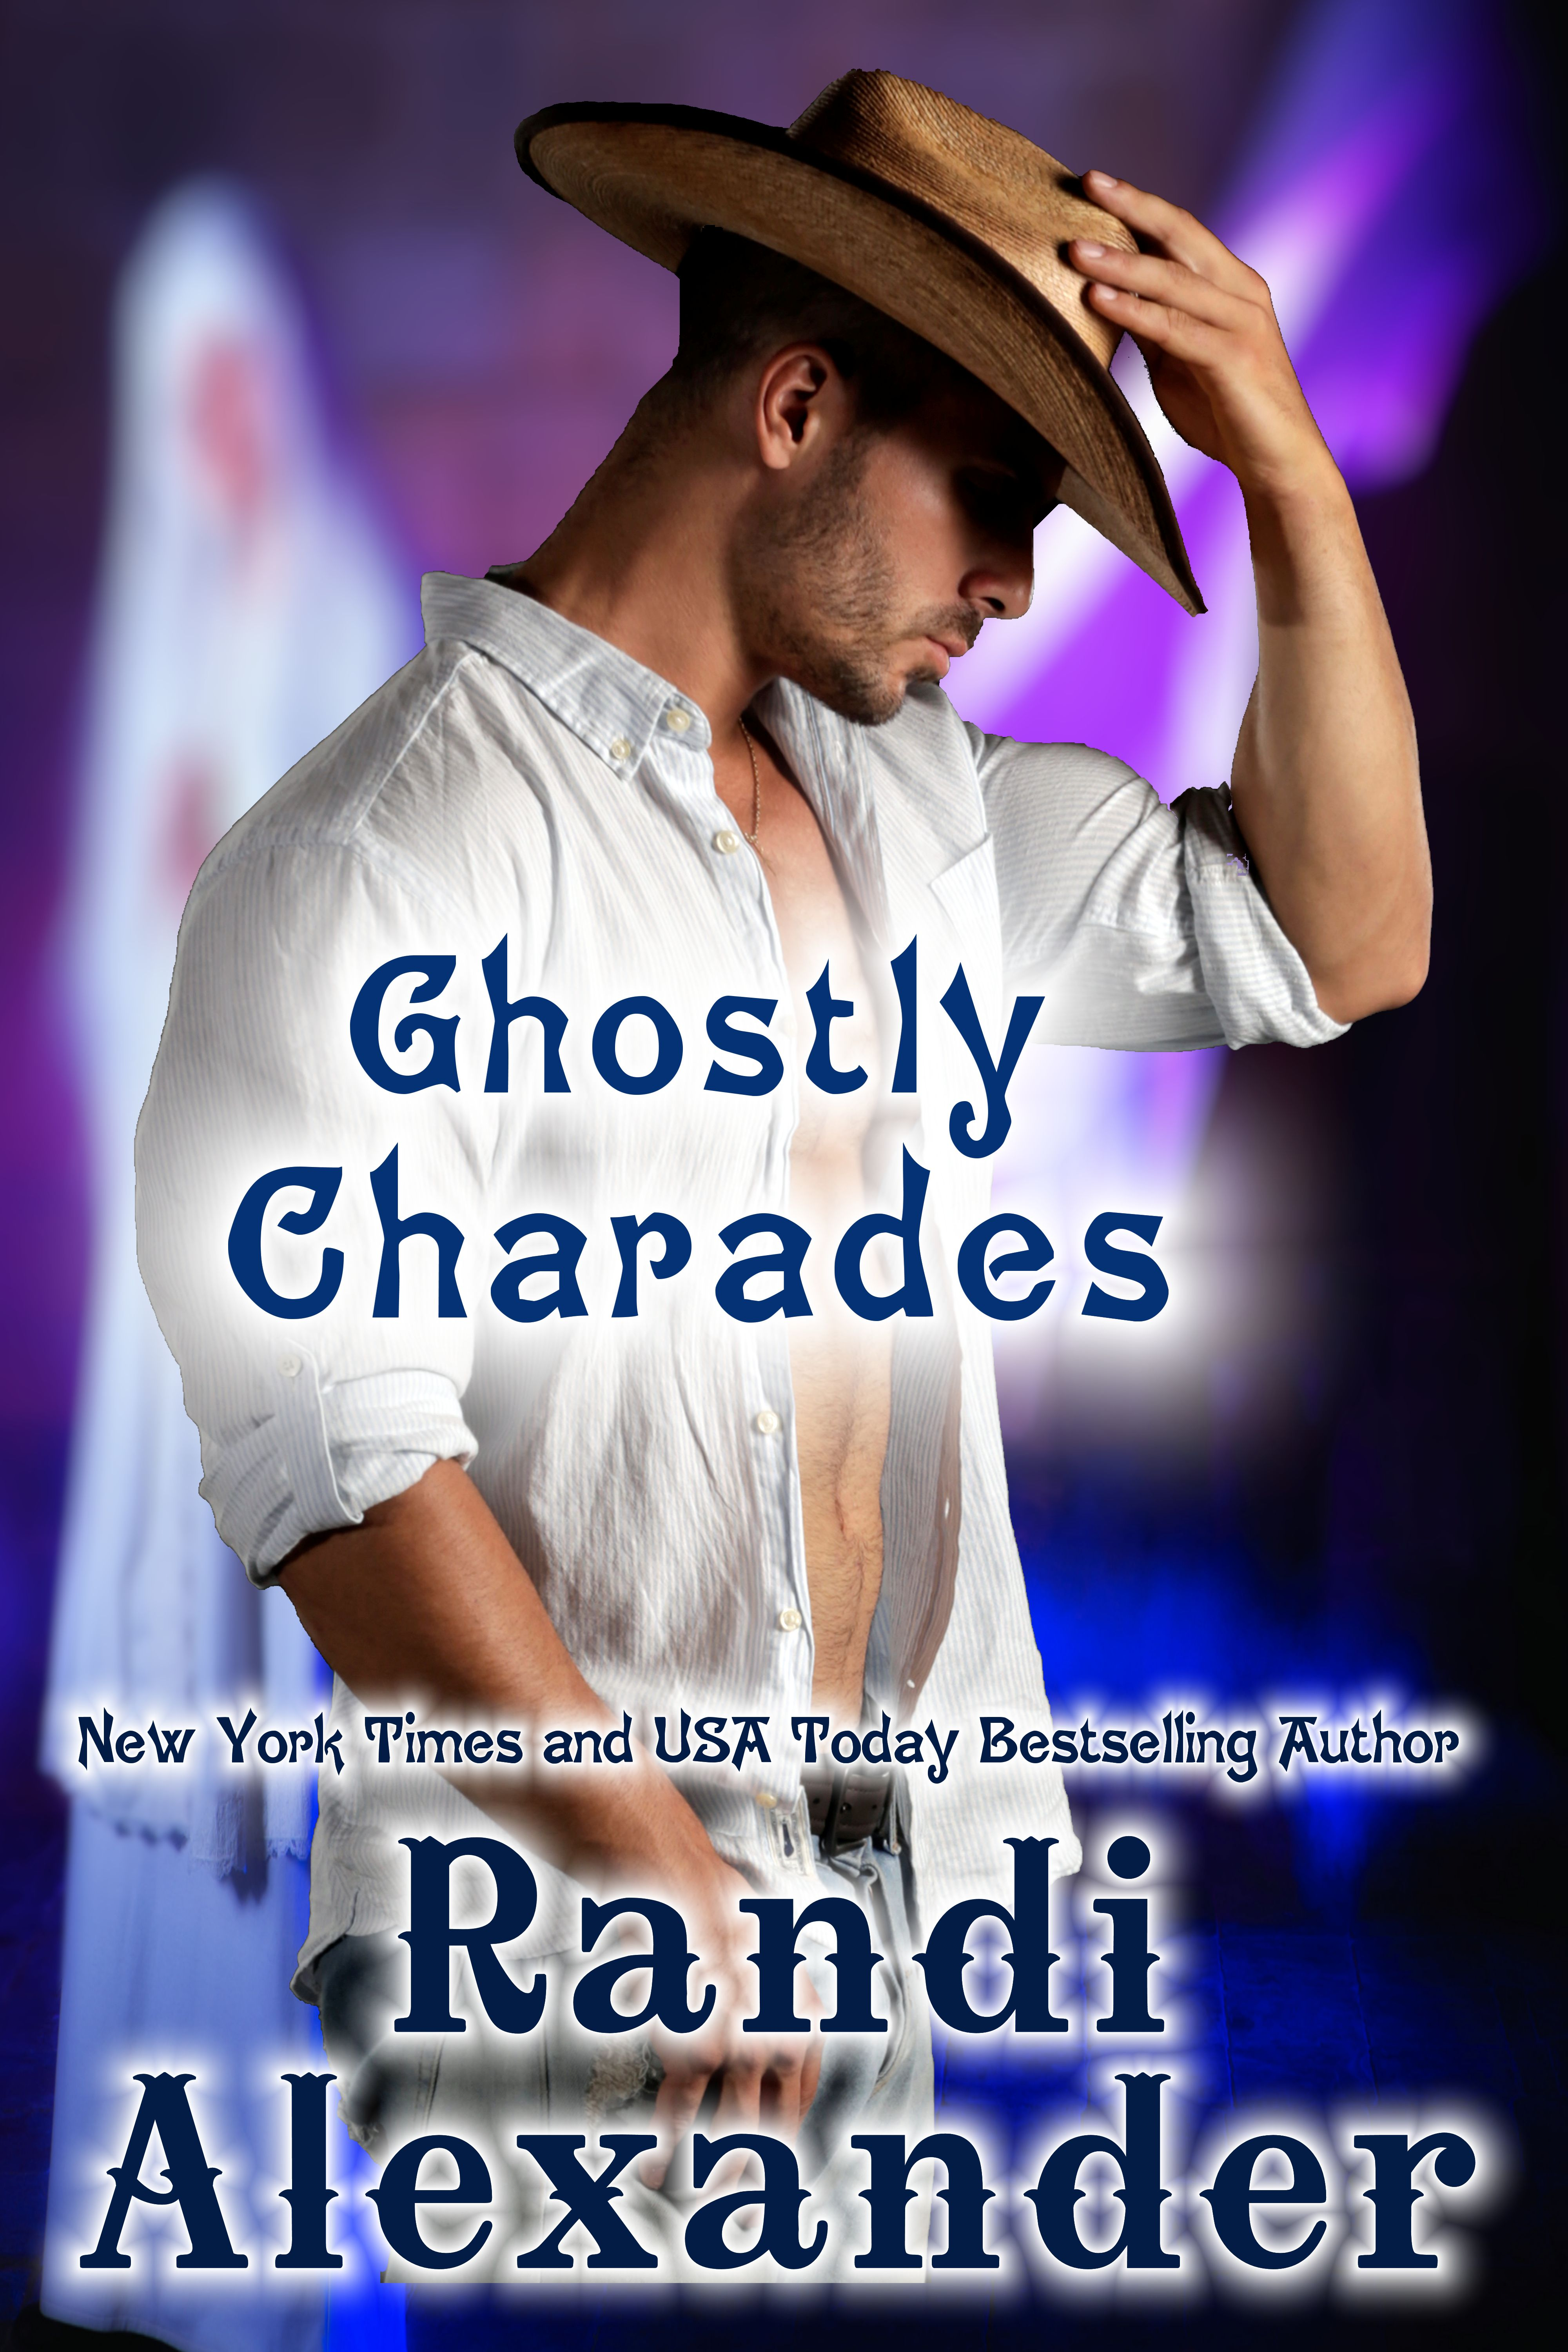 Ghostly Charades, an Ebook by Randi Alexander